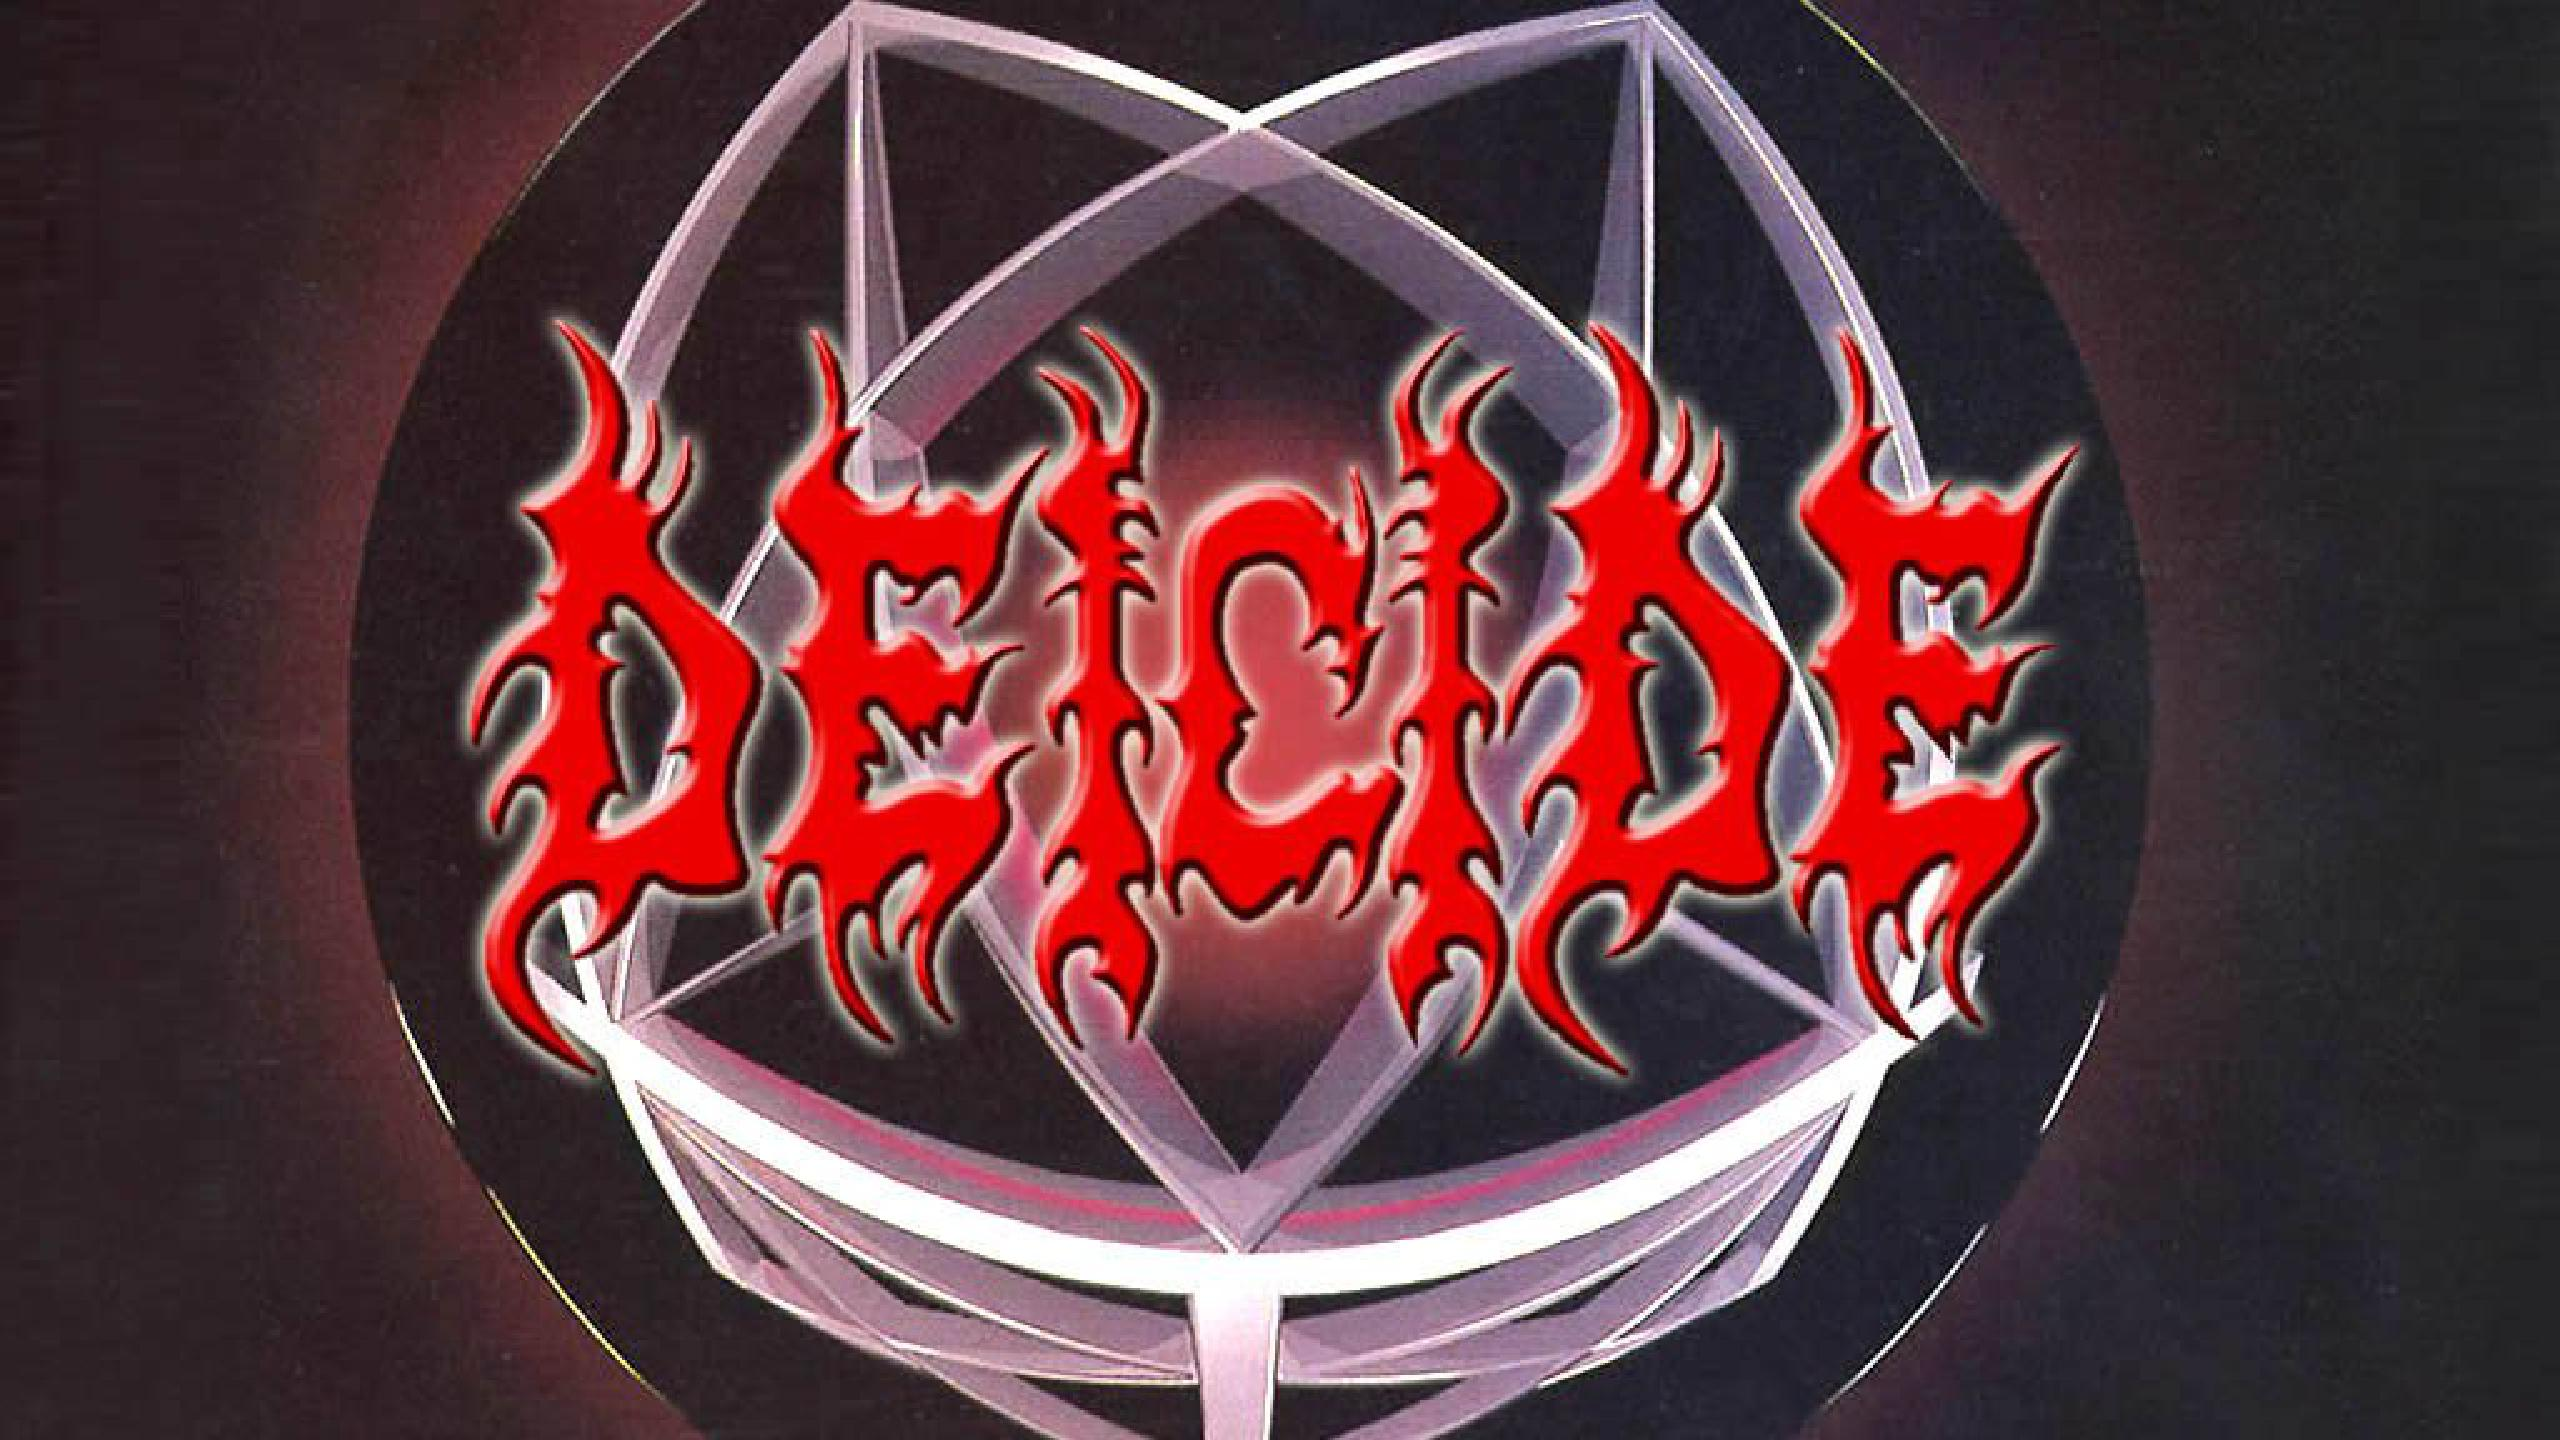 Deicide Tour 2020 Deicide tour dates 2019 2020. Deicide tickets and concerts | Wegow